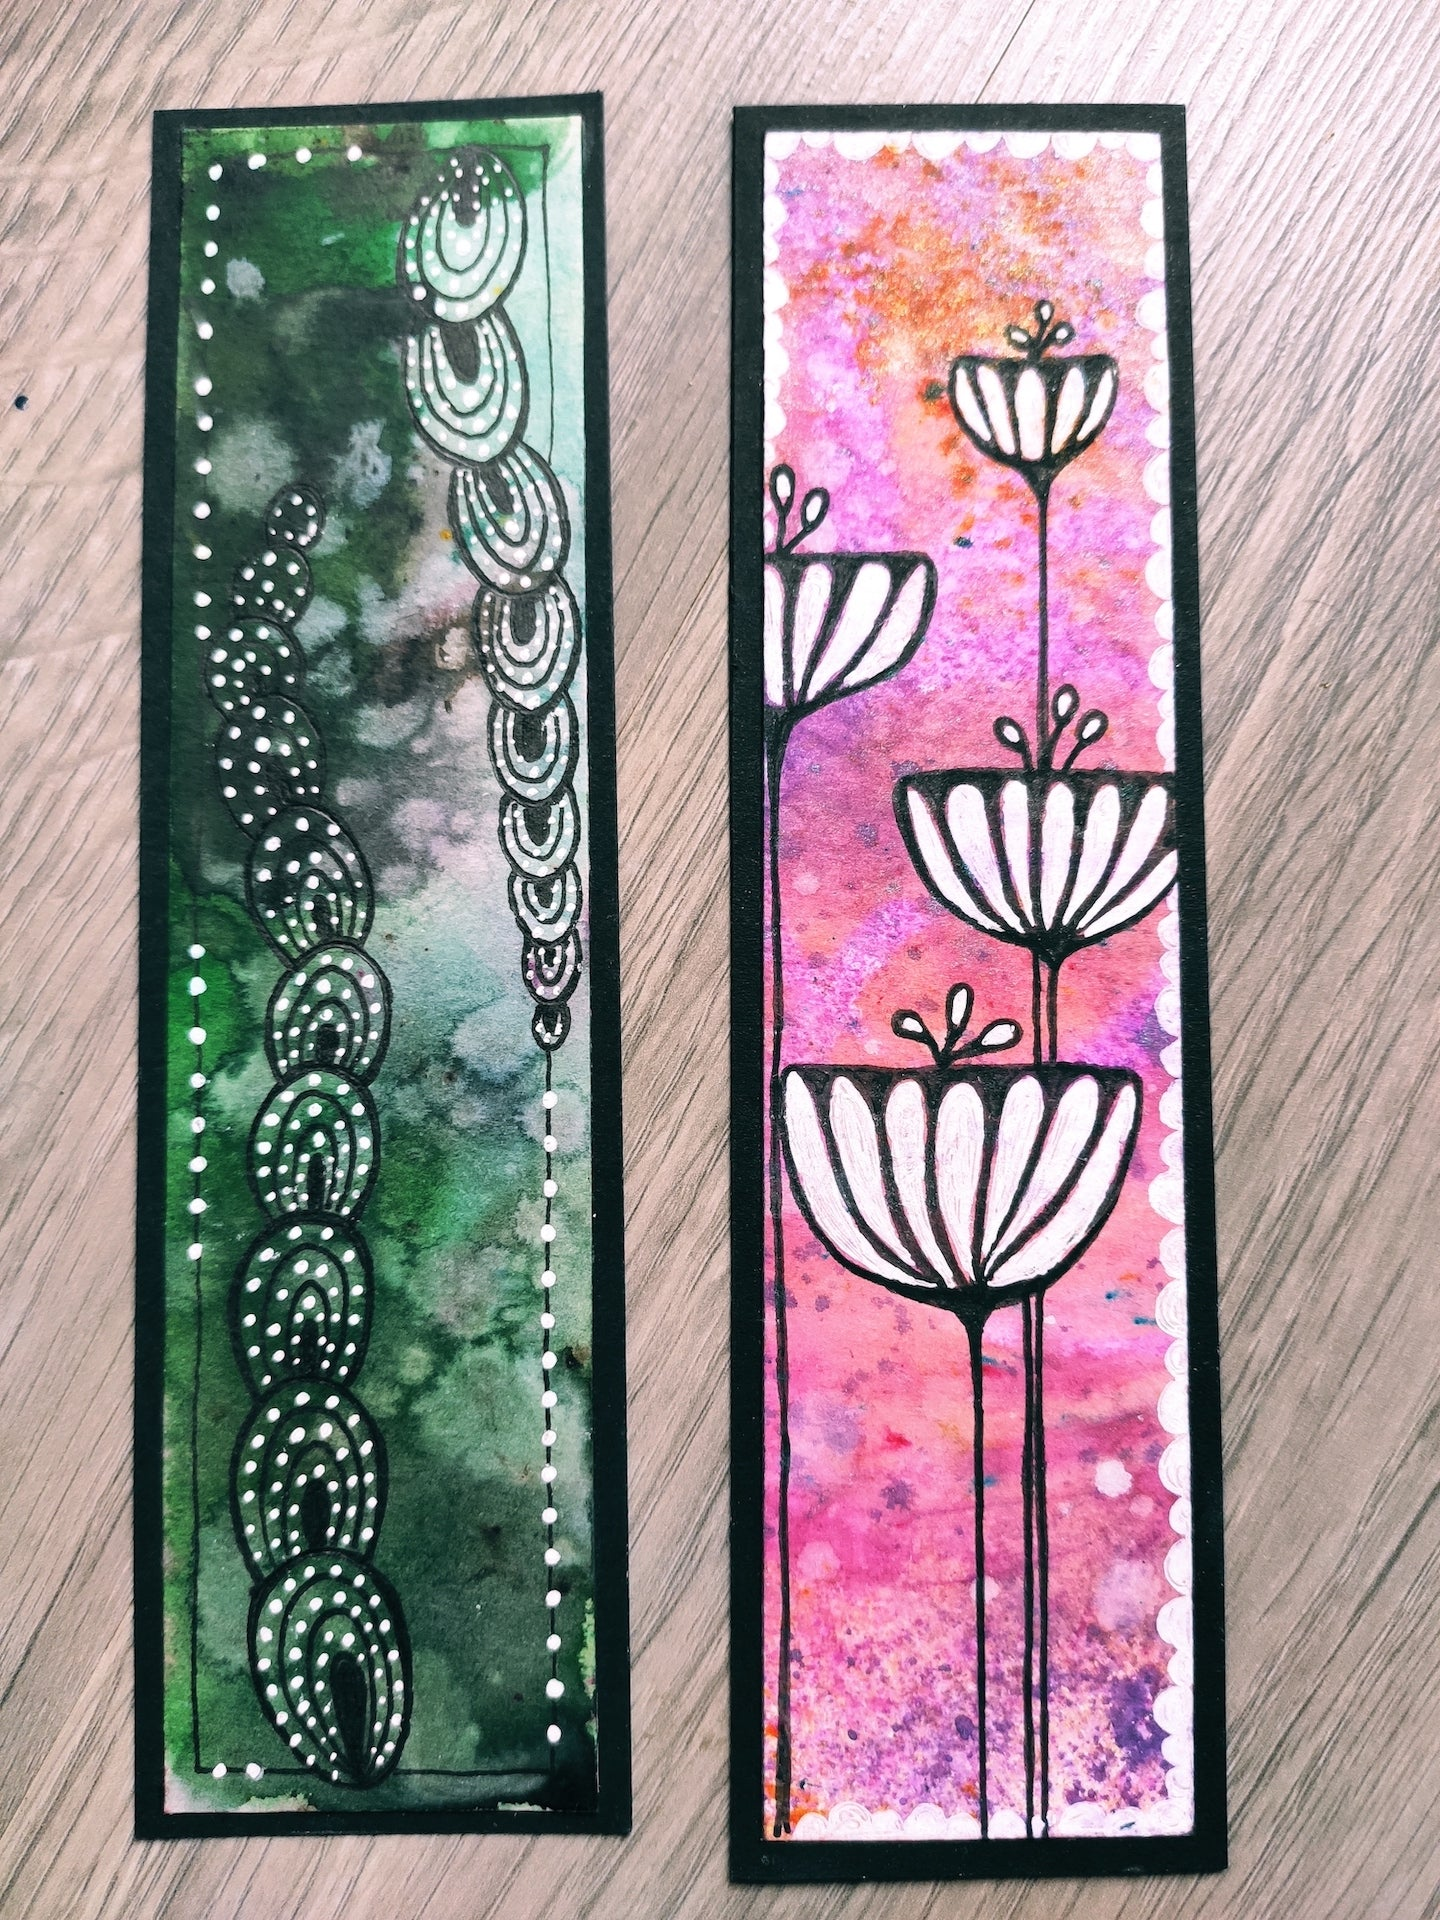 Handmade bookmarks with doodles, set 17